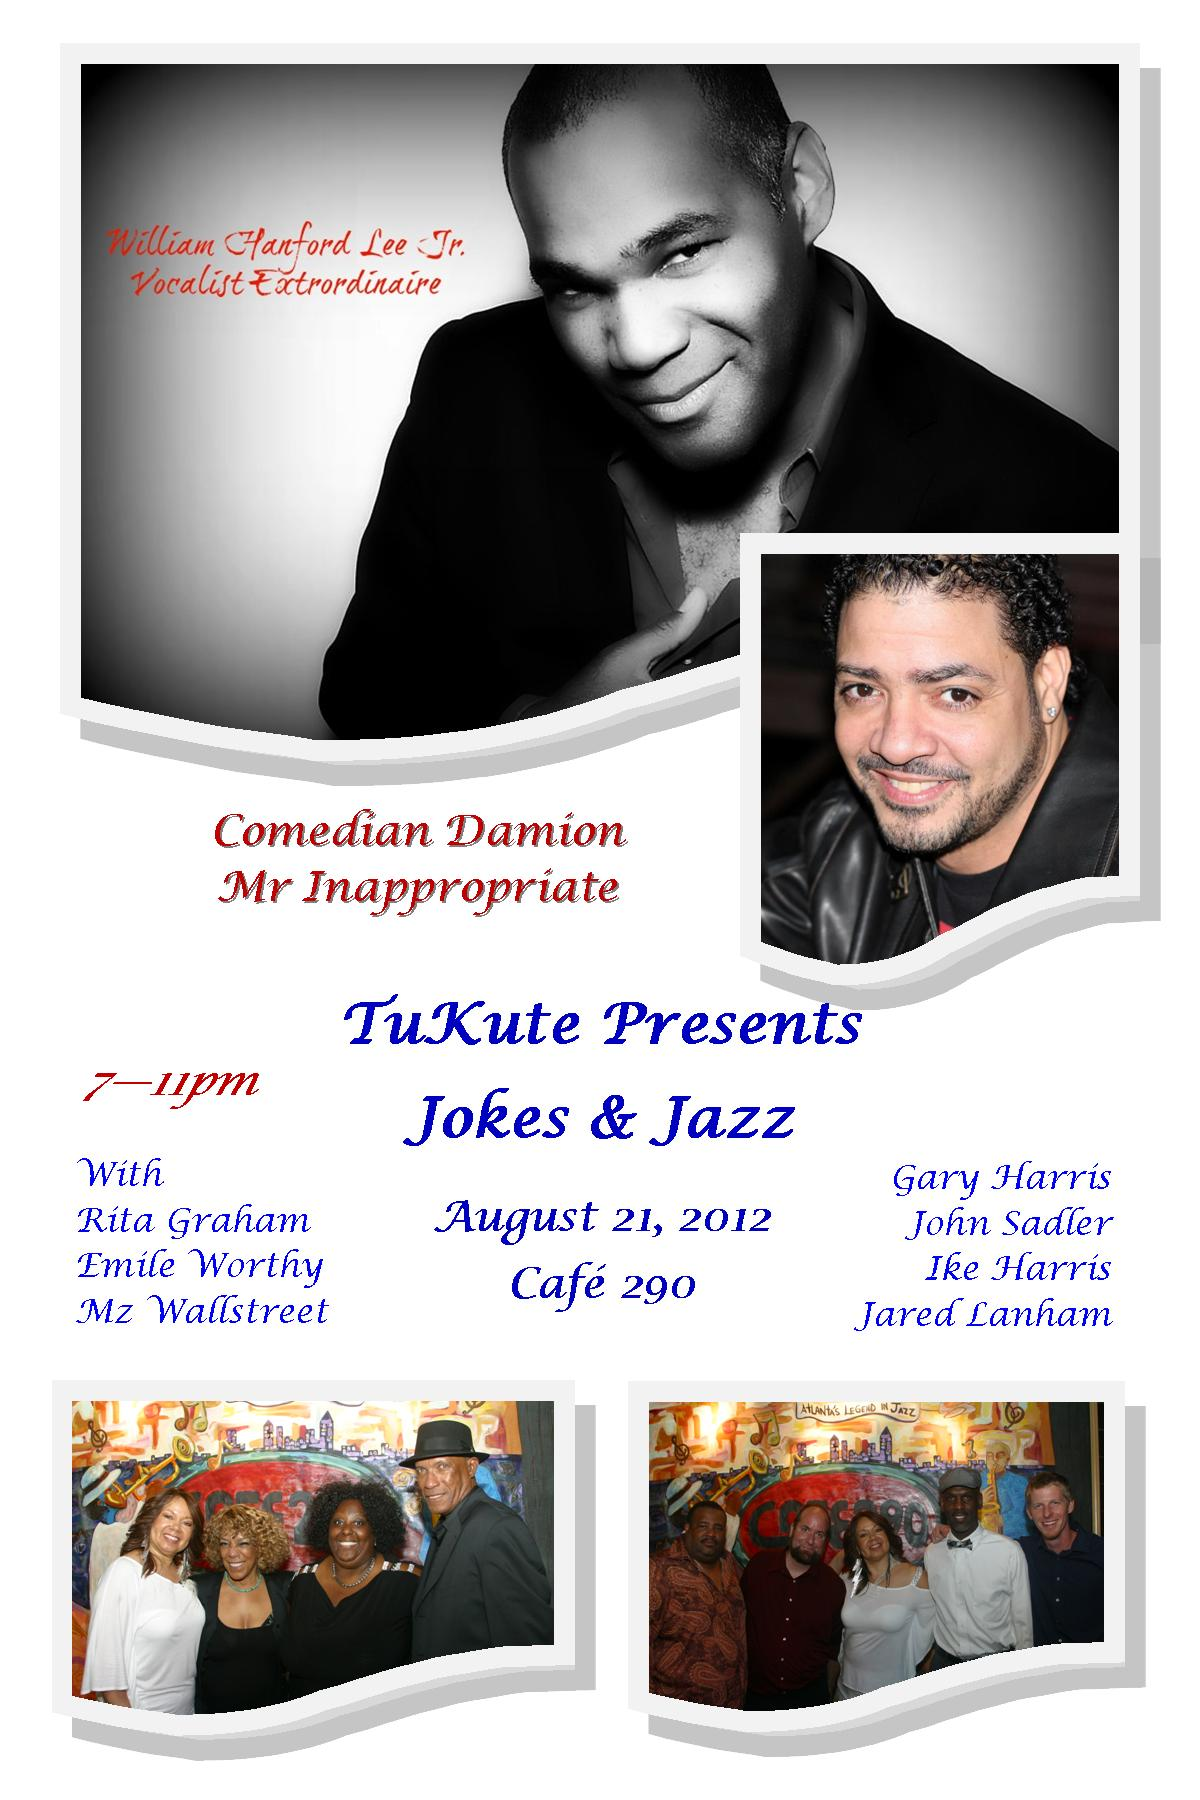 Jokes & Jazz in August